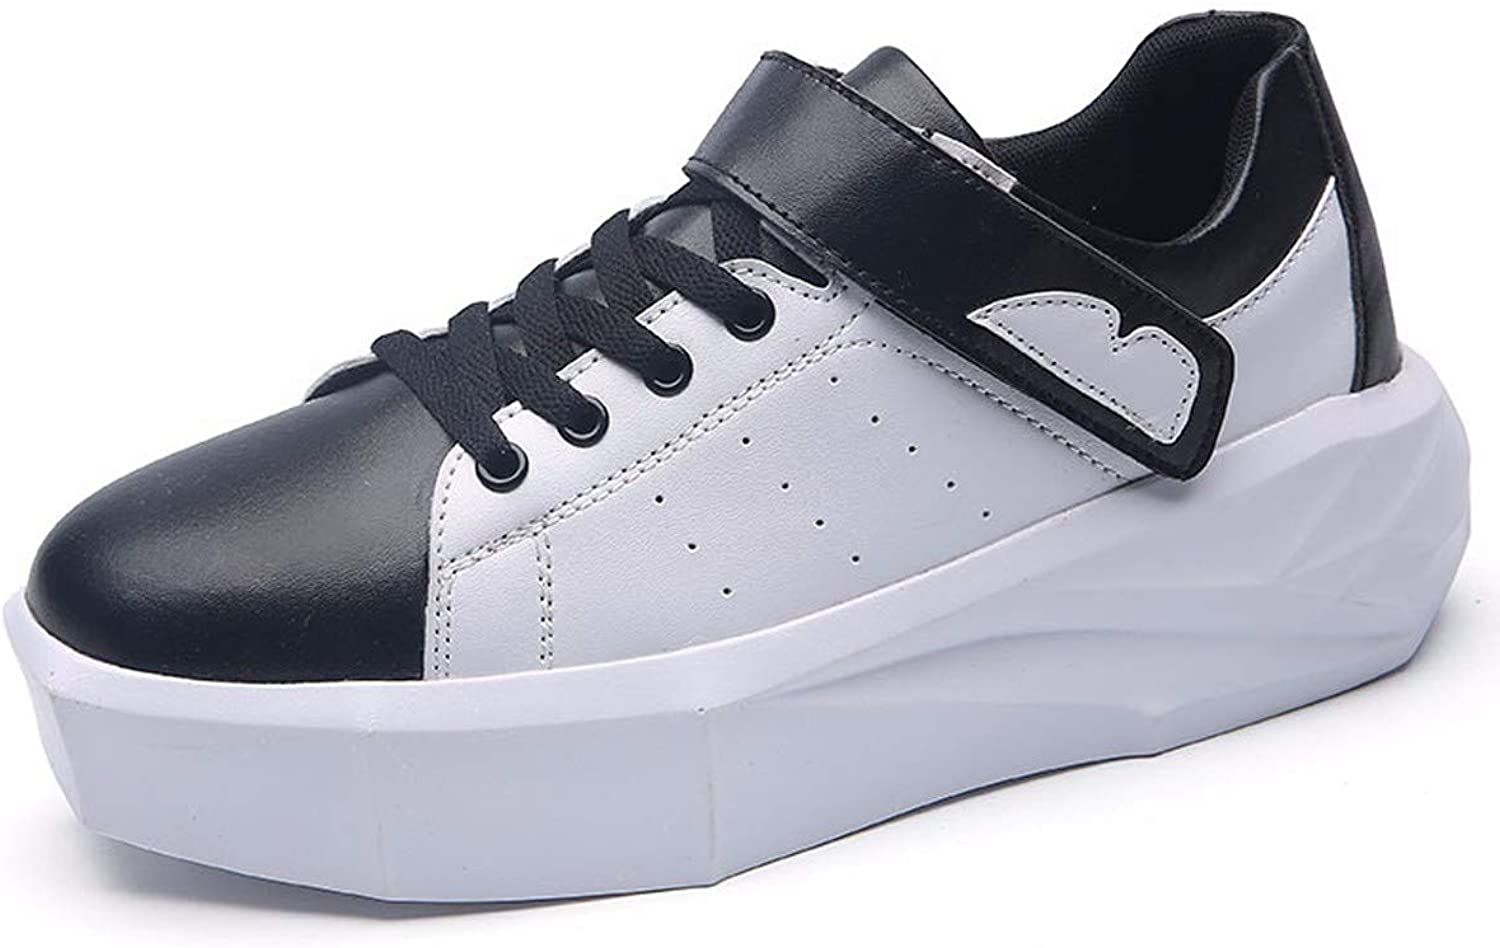 KMJBS-Men'S Casual shoes Are Thicker Breathable Muffin shoes Night Clubs.Silvery Forty-Four